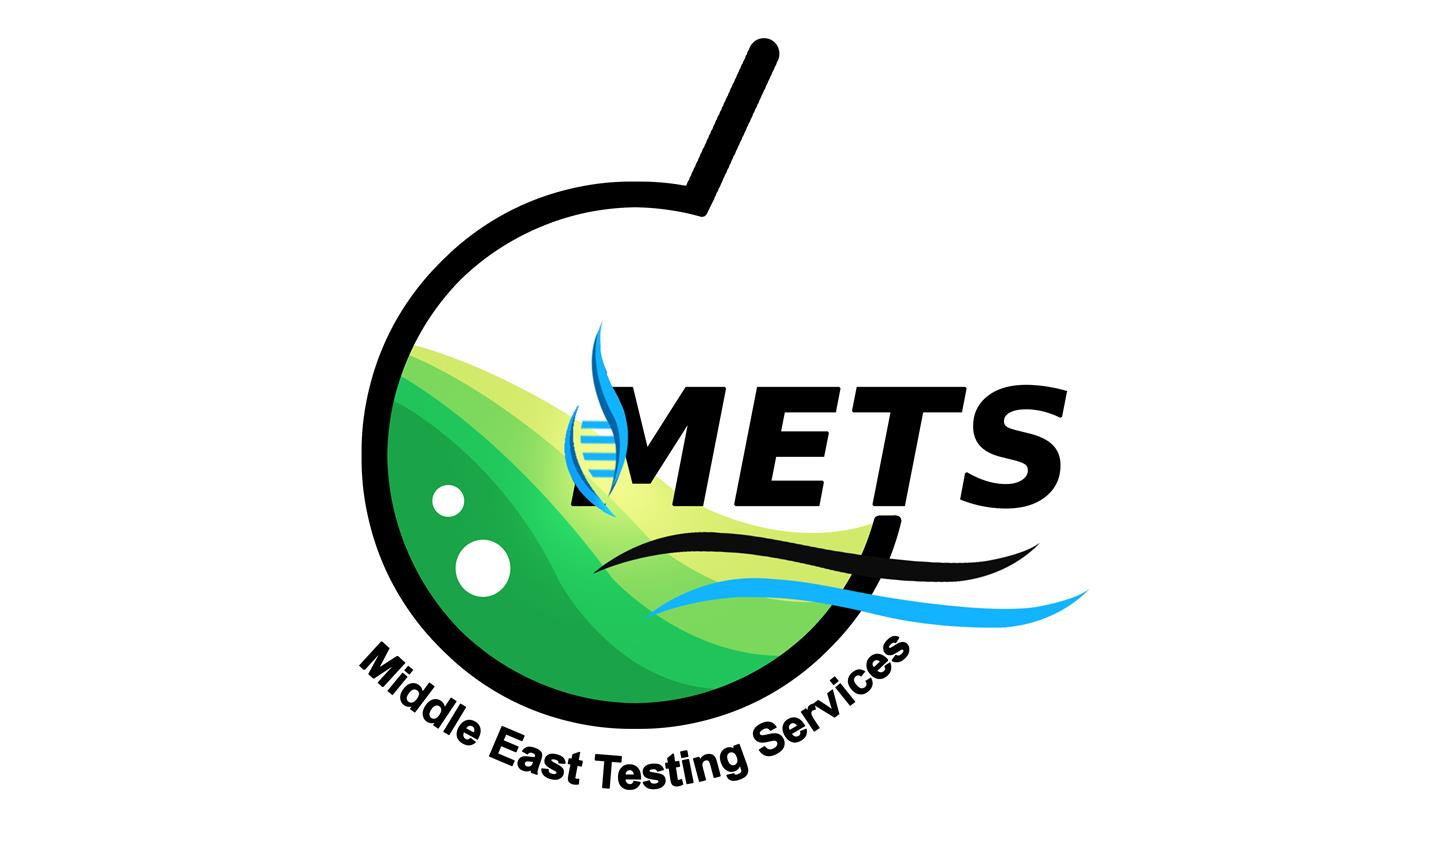 Middle East Testing Services Started at Ajman, UAE